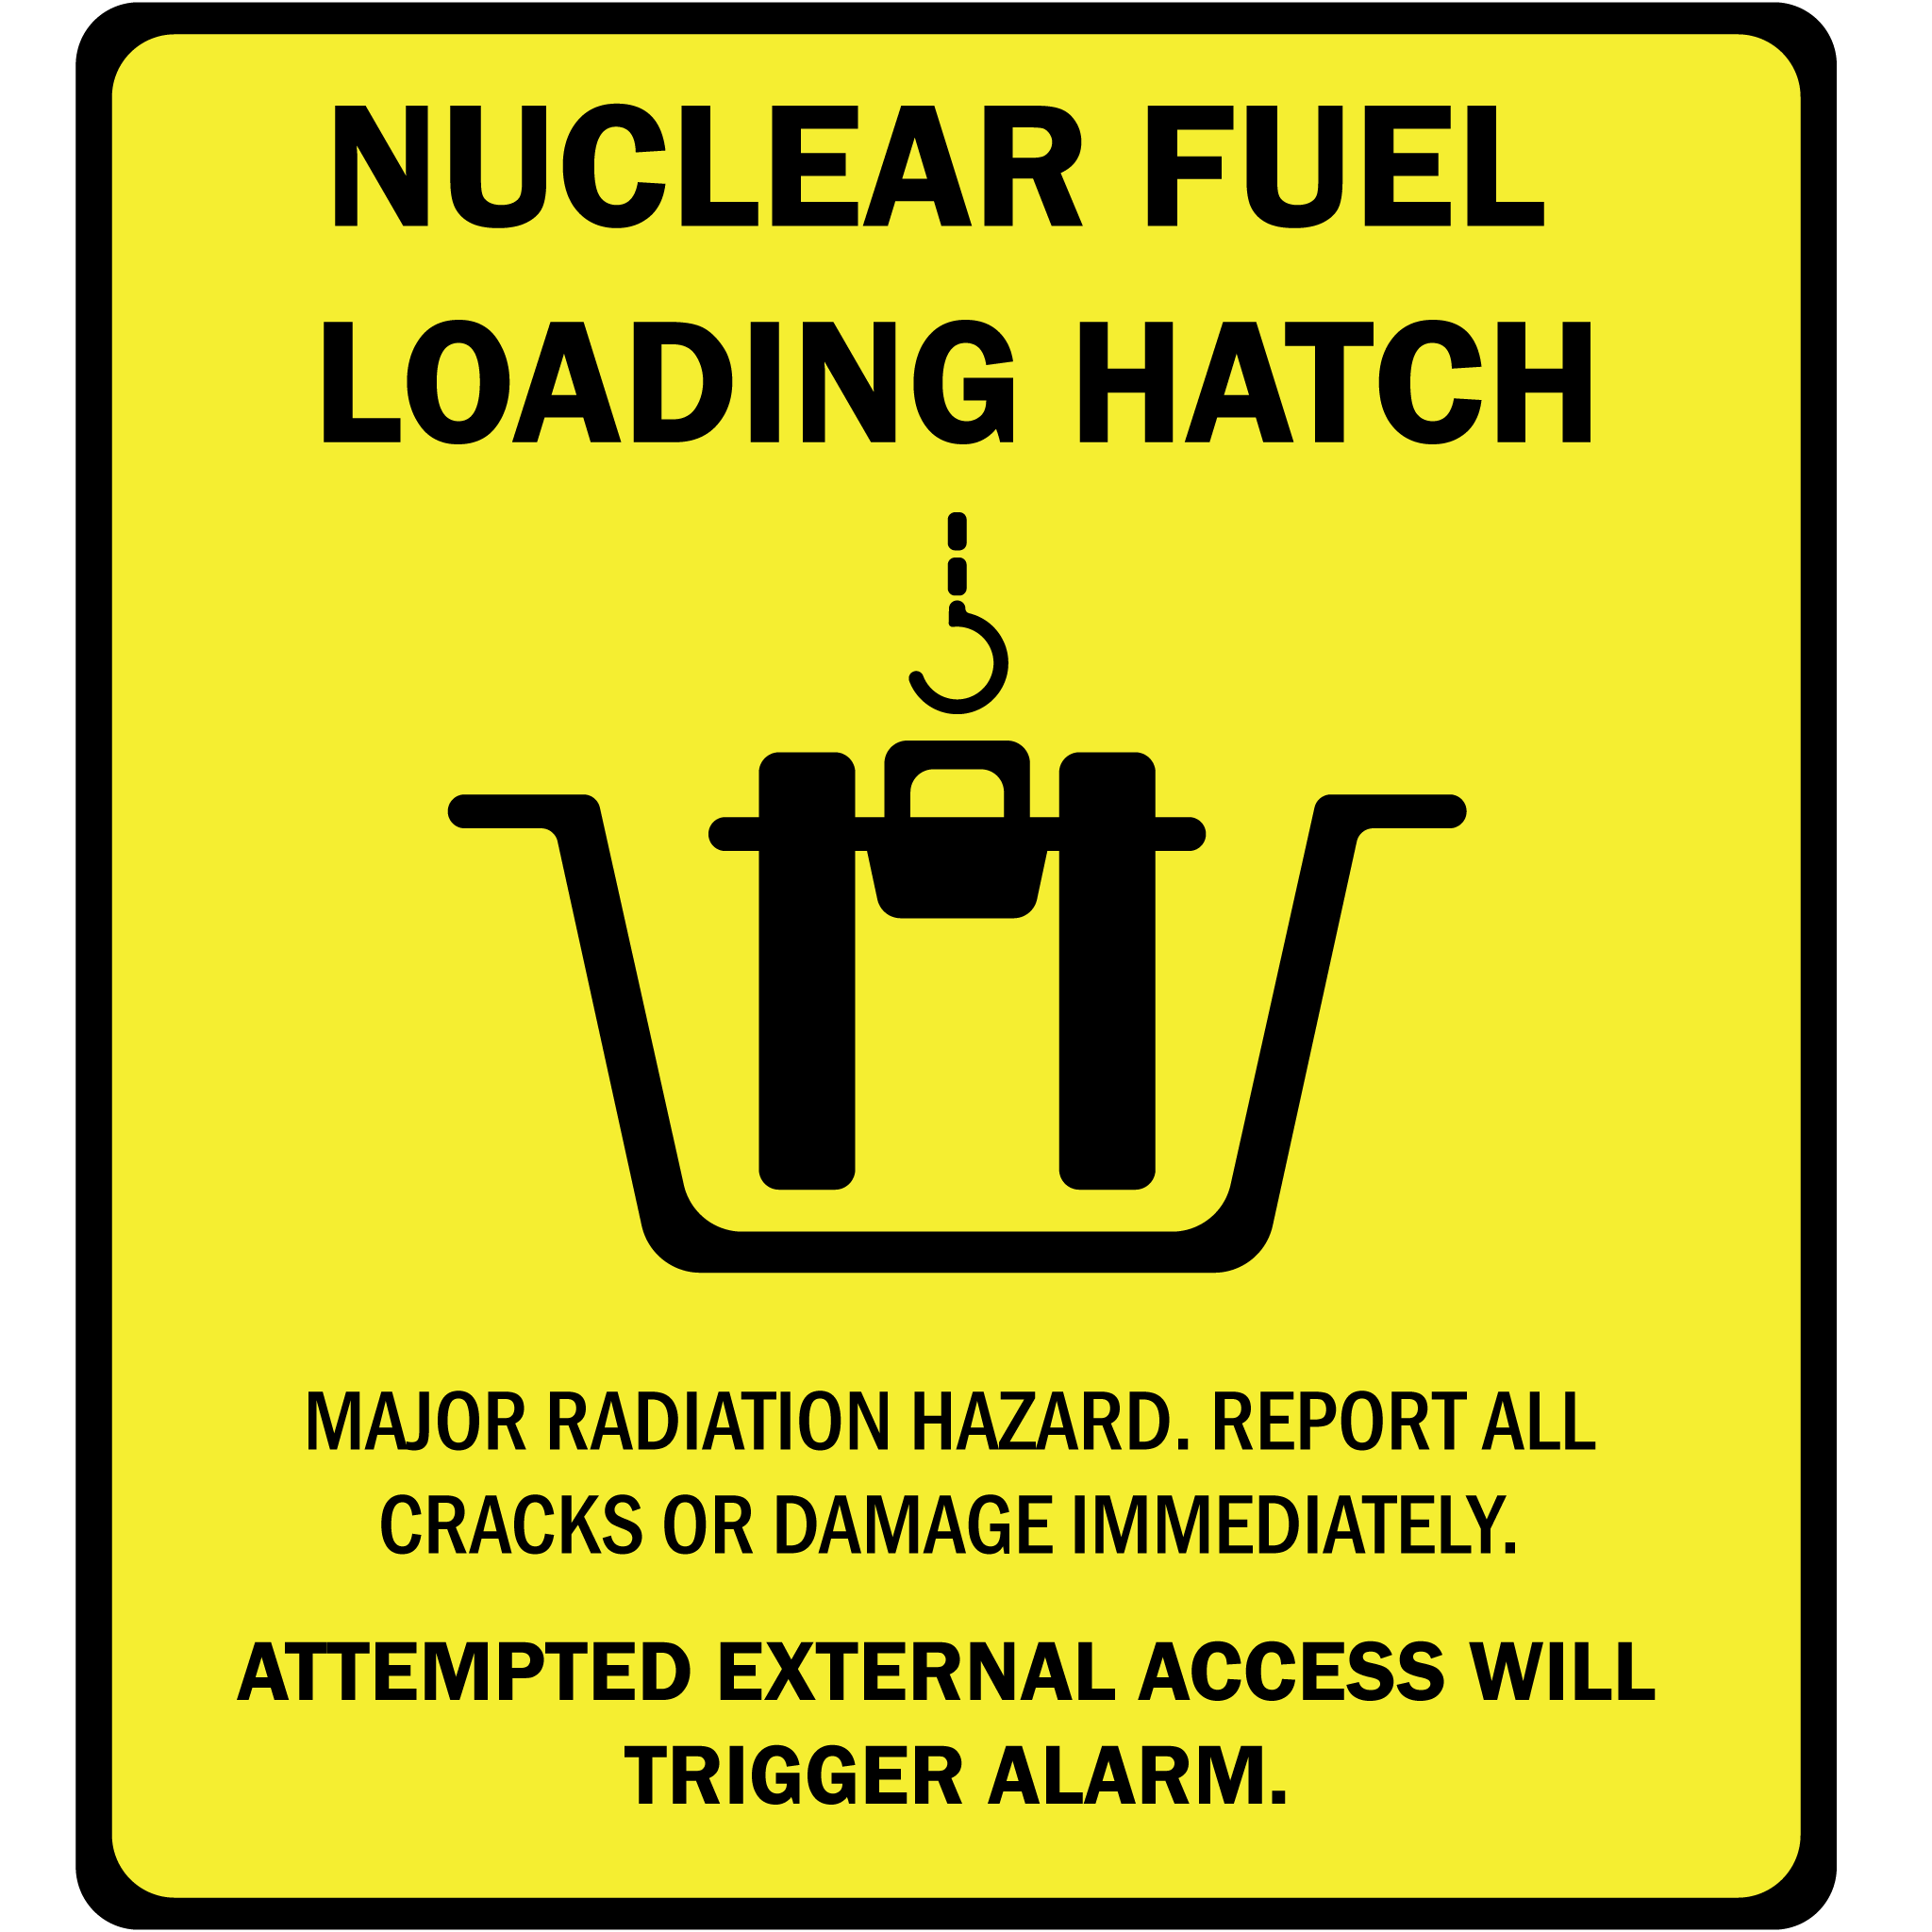 NuclearFuelHatch.png